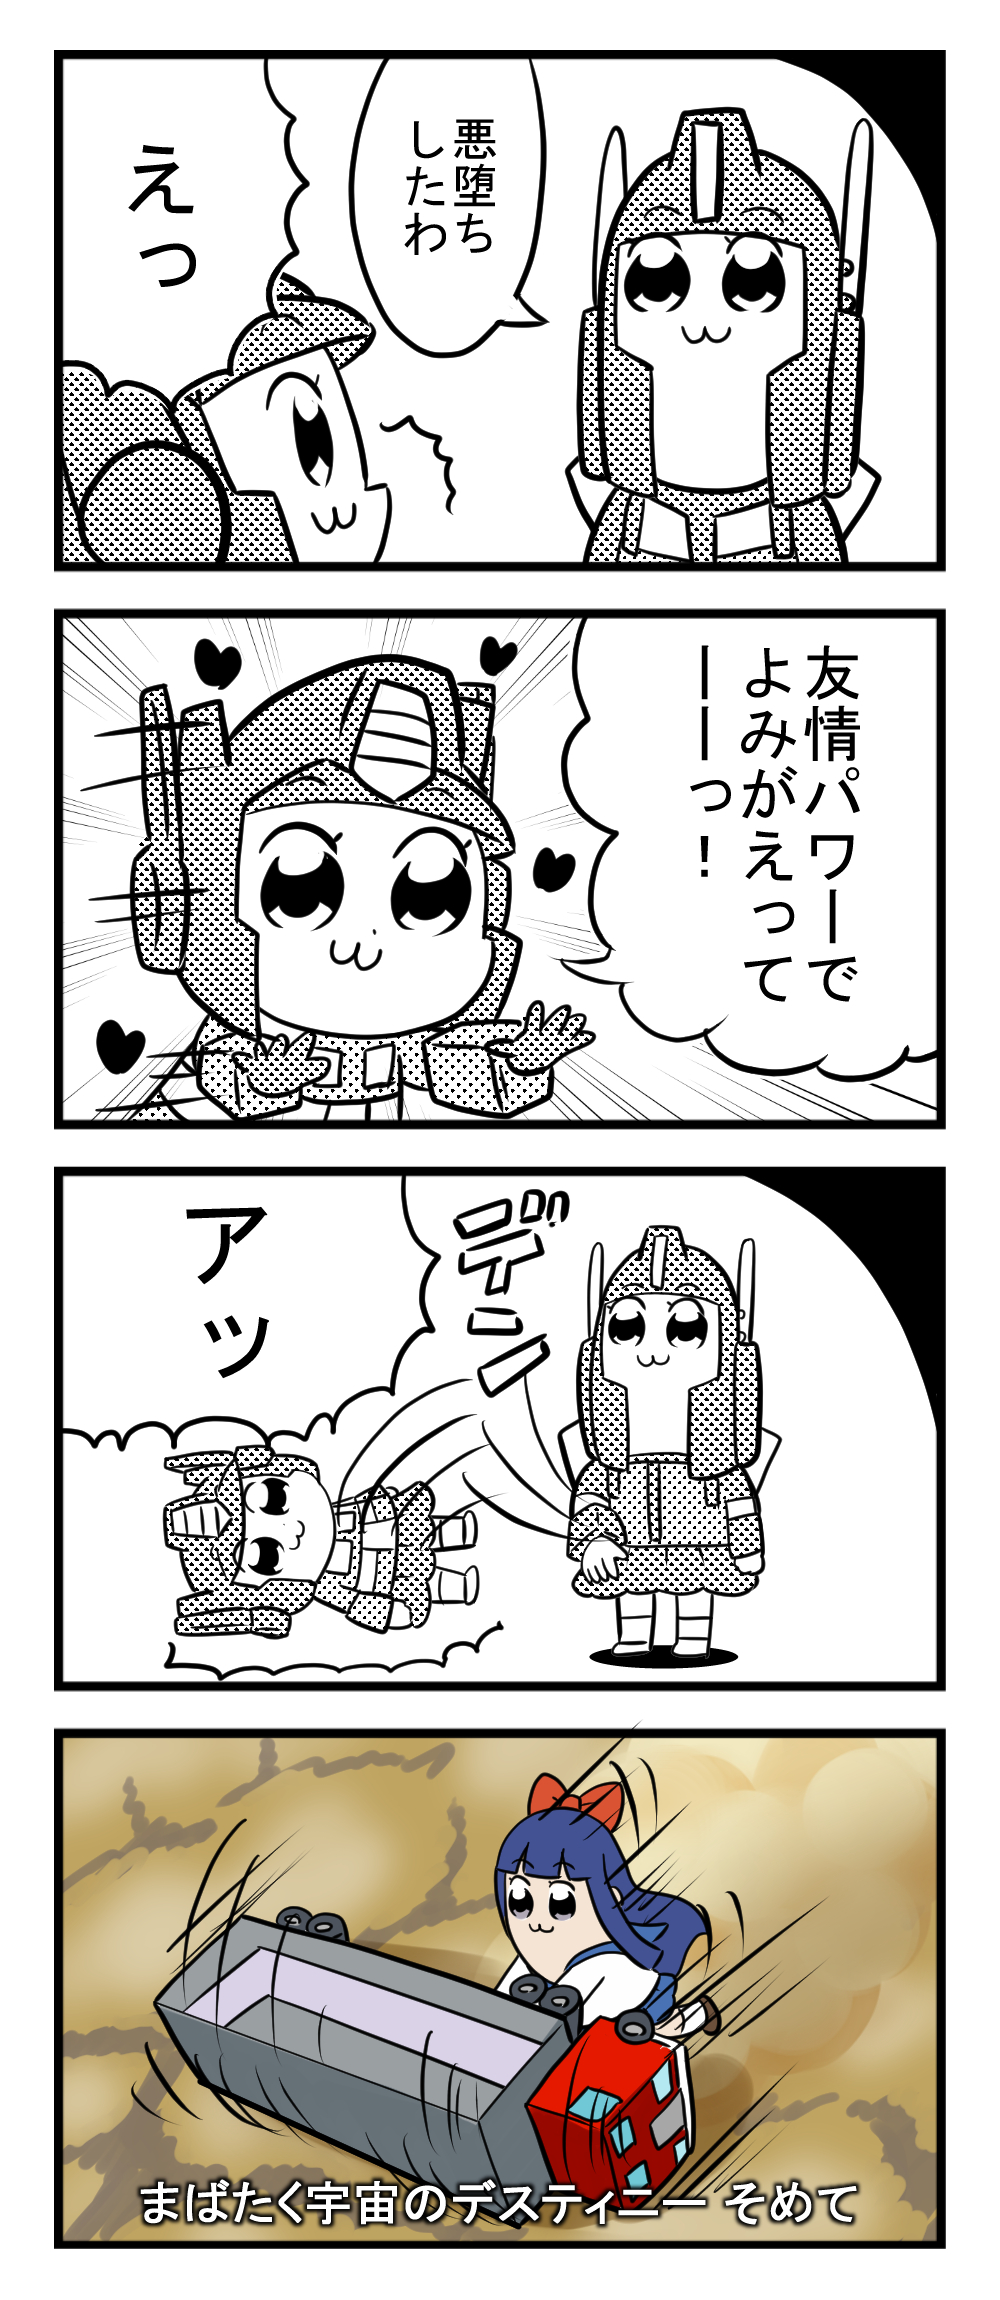 2girls 4koma 80s :3 asimo953 autobot bkub_(style) black_hair comic cosplay crossover greyscale ground_vehicle headgear highres long_hair monochrome motor_vehicle multiple_girls oldschool optimus_prime optimus_prime_(cosplay) parody personification pipimi poptepipic popuko school_uniform seiyuu_connection short_hair skirt smile standing style_parody transformers translation_request truck ultra_magnus ultra_magnus_(cosplay)